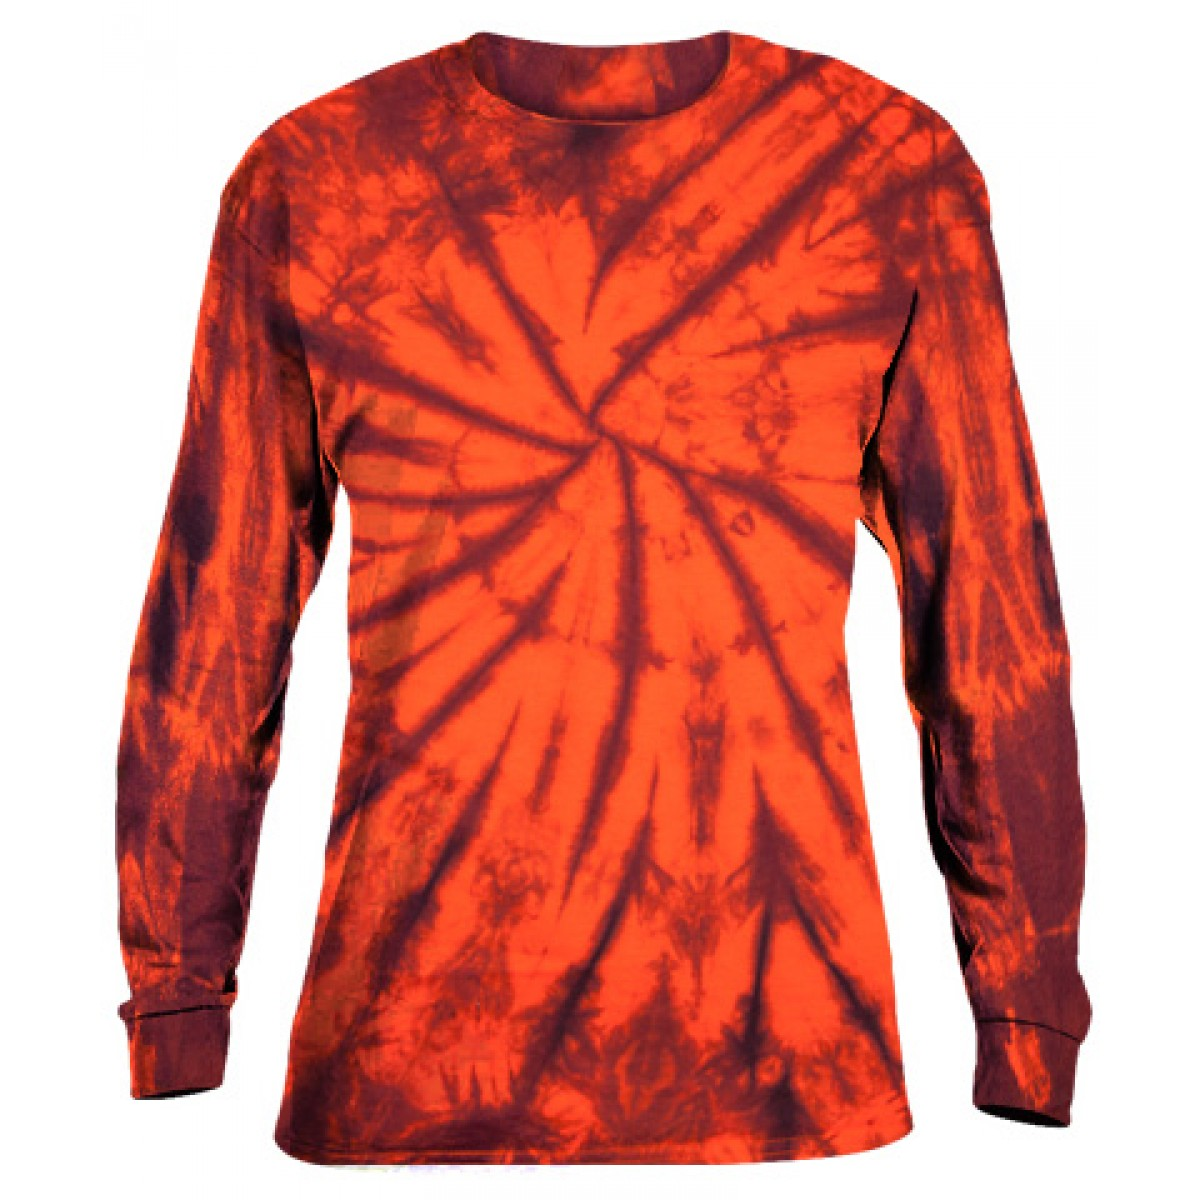 Tie-Dye Long Sleeve Shirt -Fall Orange -2XL